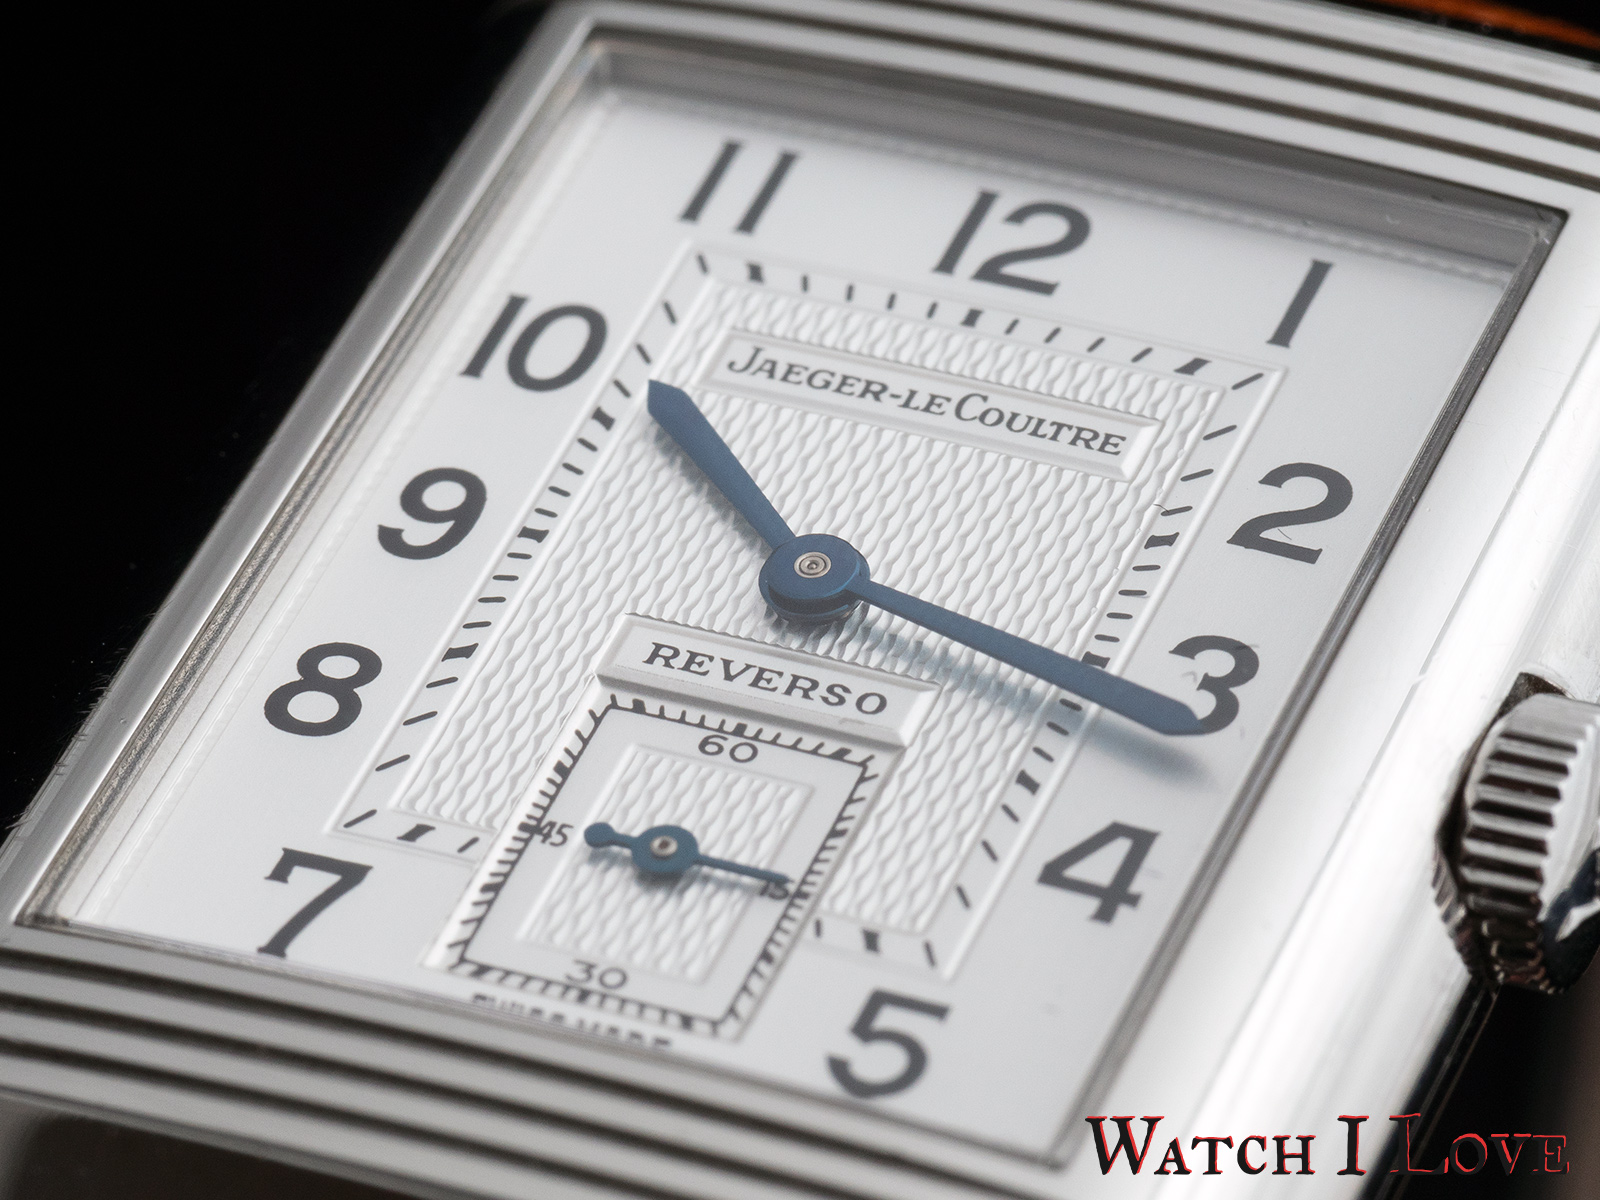 Jaeger-LeCoultre Reverso Duoface Day&Night dial details